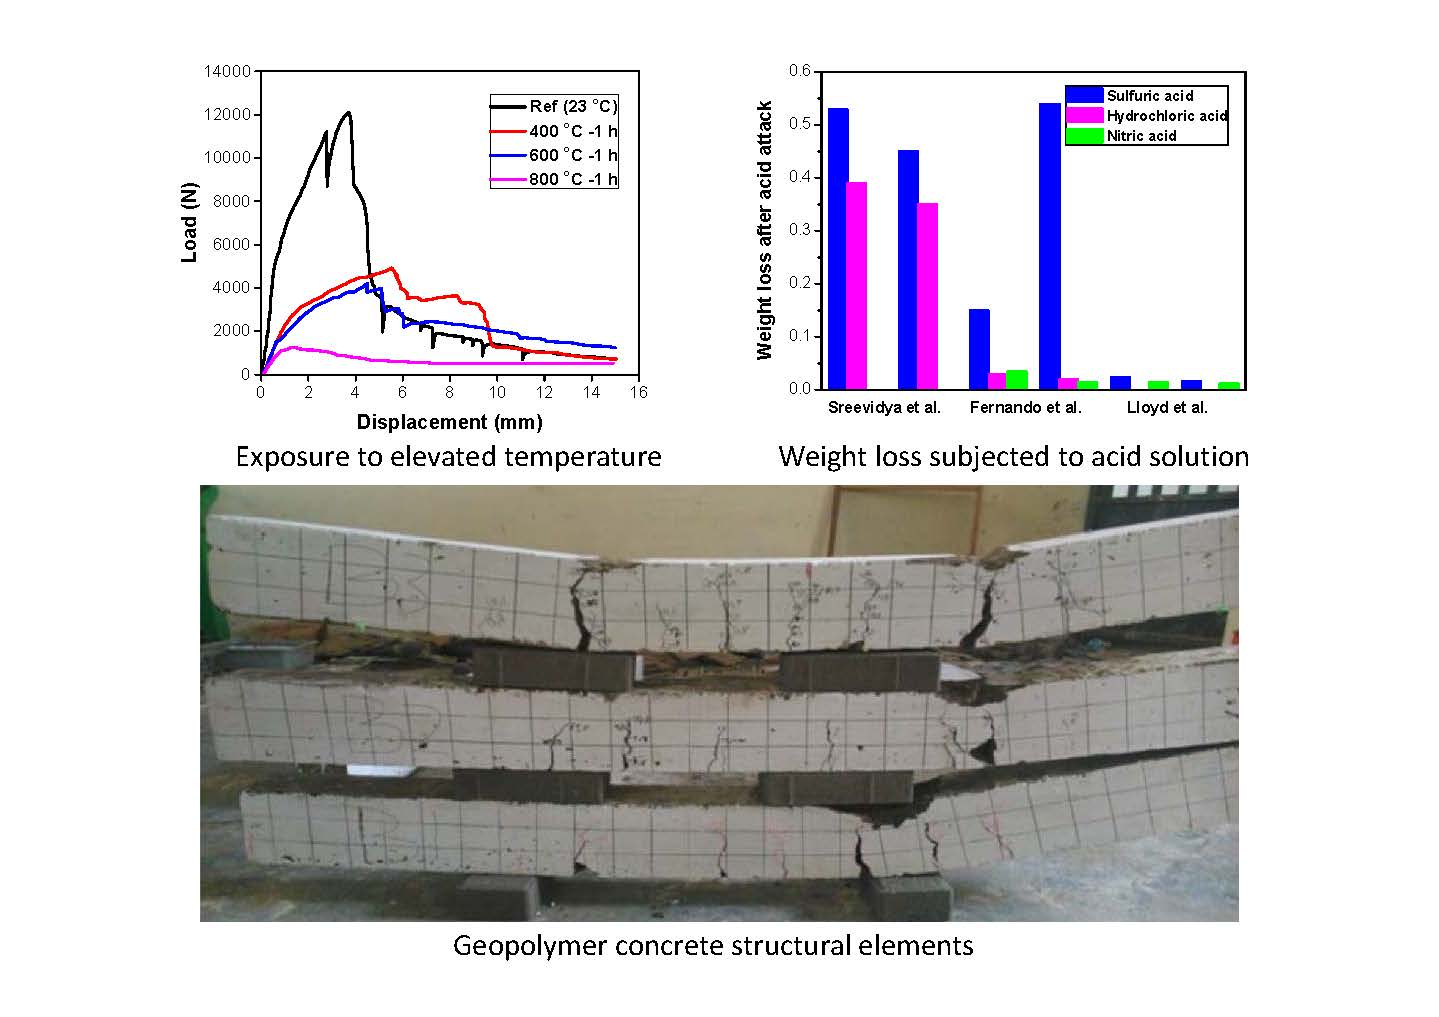 A Review on Durability of Alkali-activated System from Sustainable Construction Materials to Infrastructures